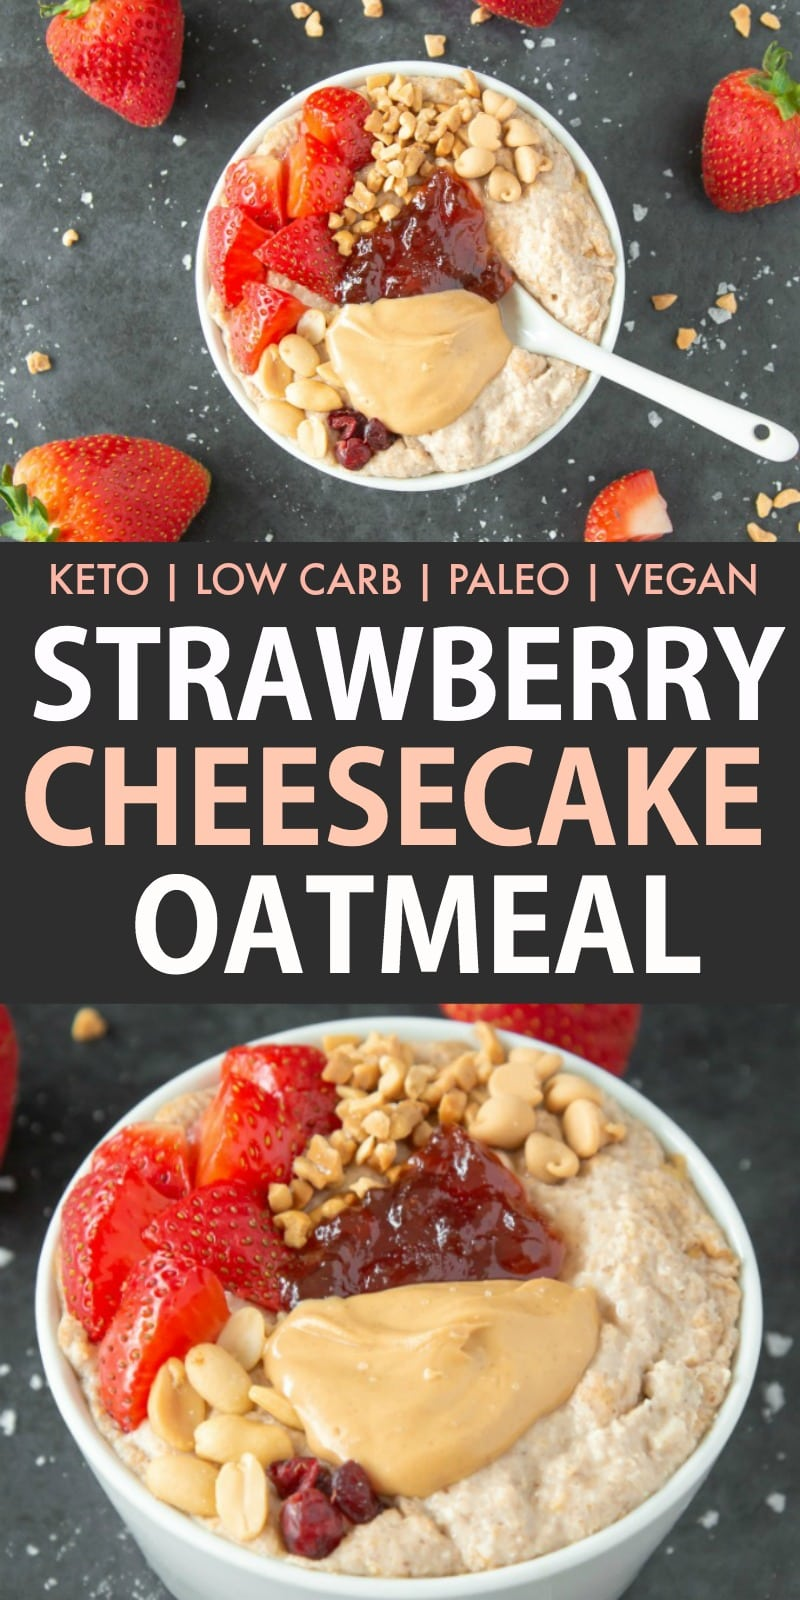 How to make strawberry cheesecake overnight oats (porridge) that is keto, low carb and dairy free.